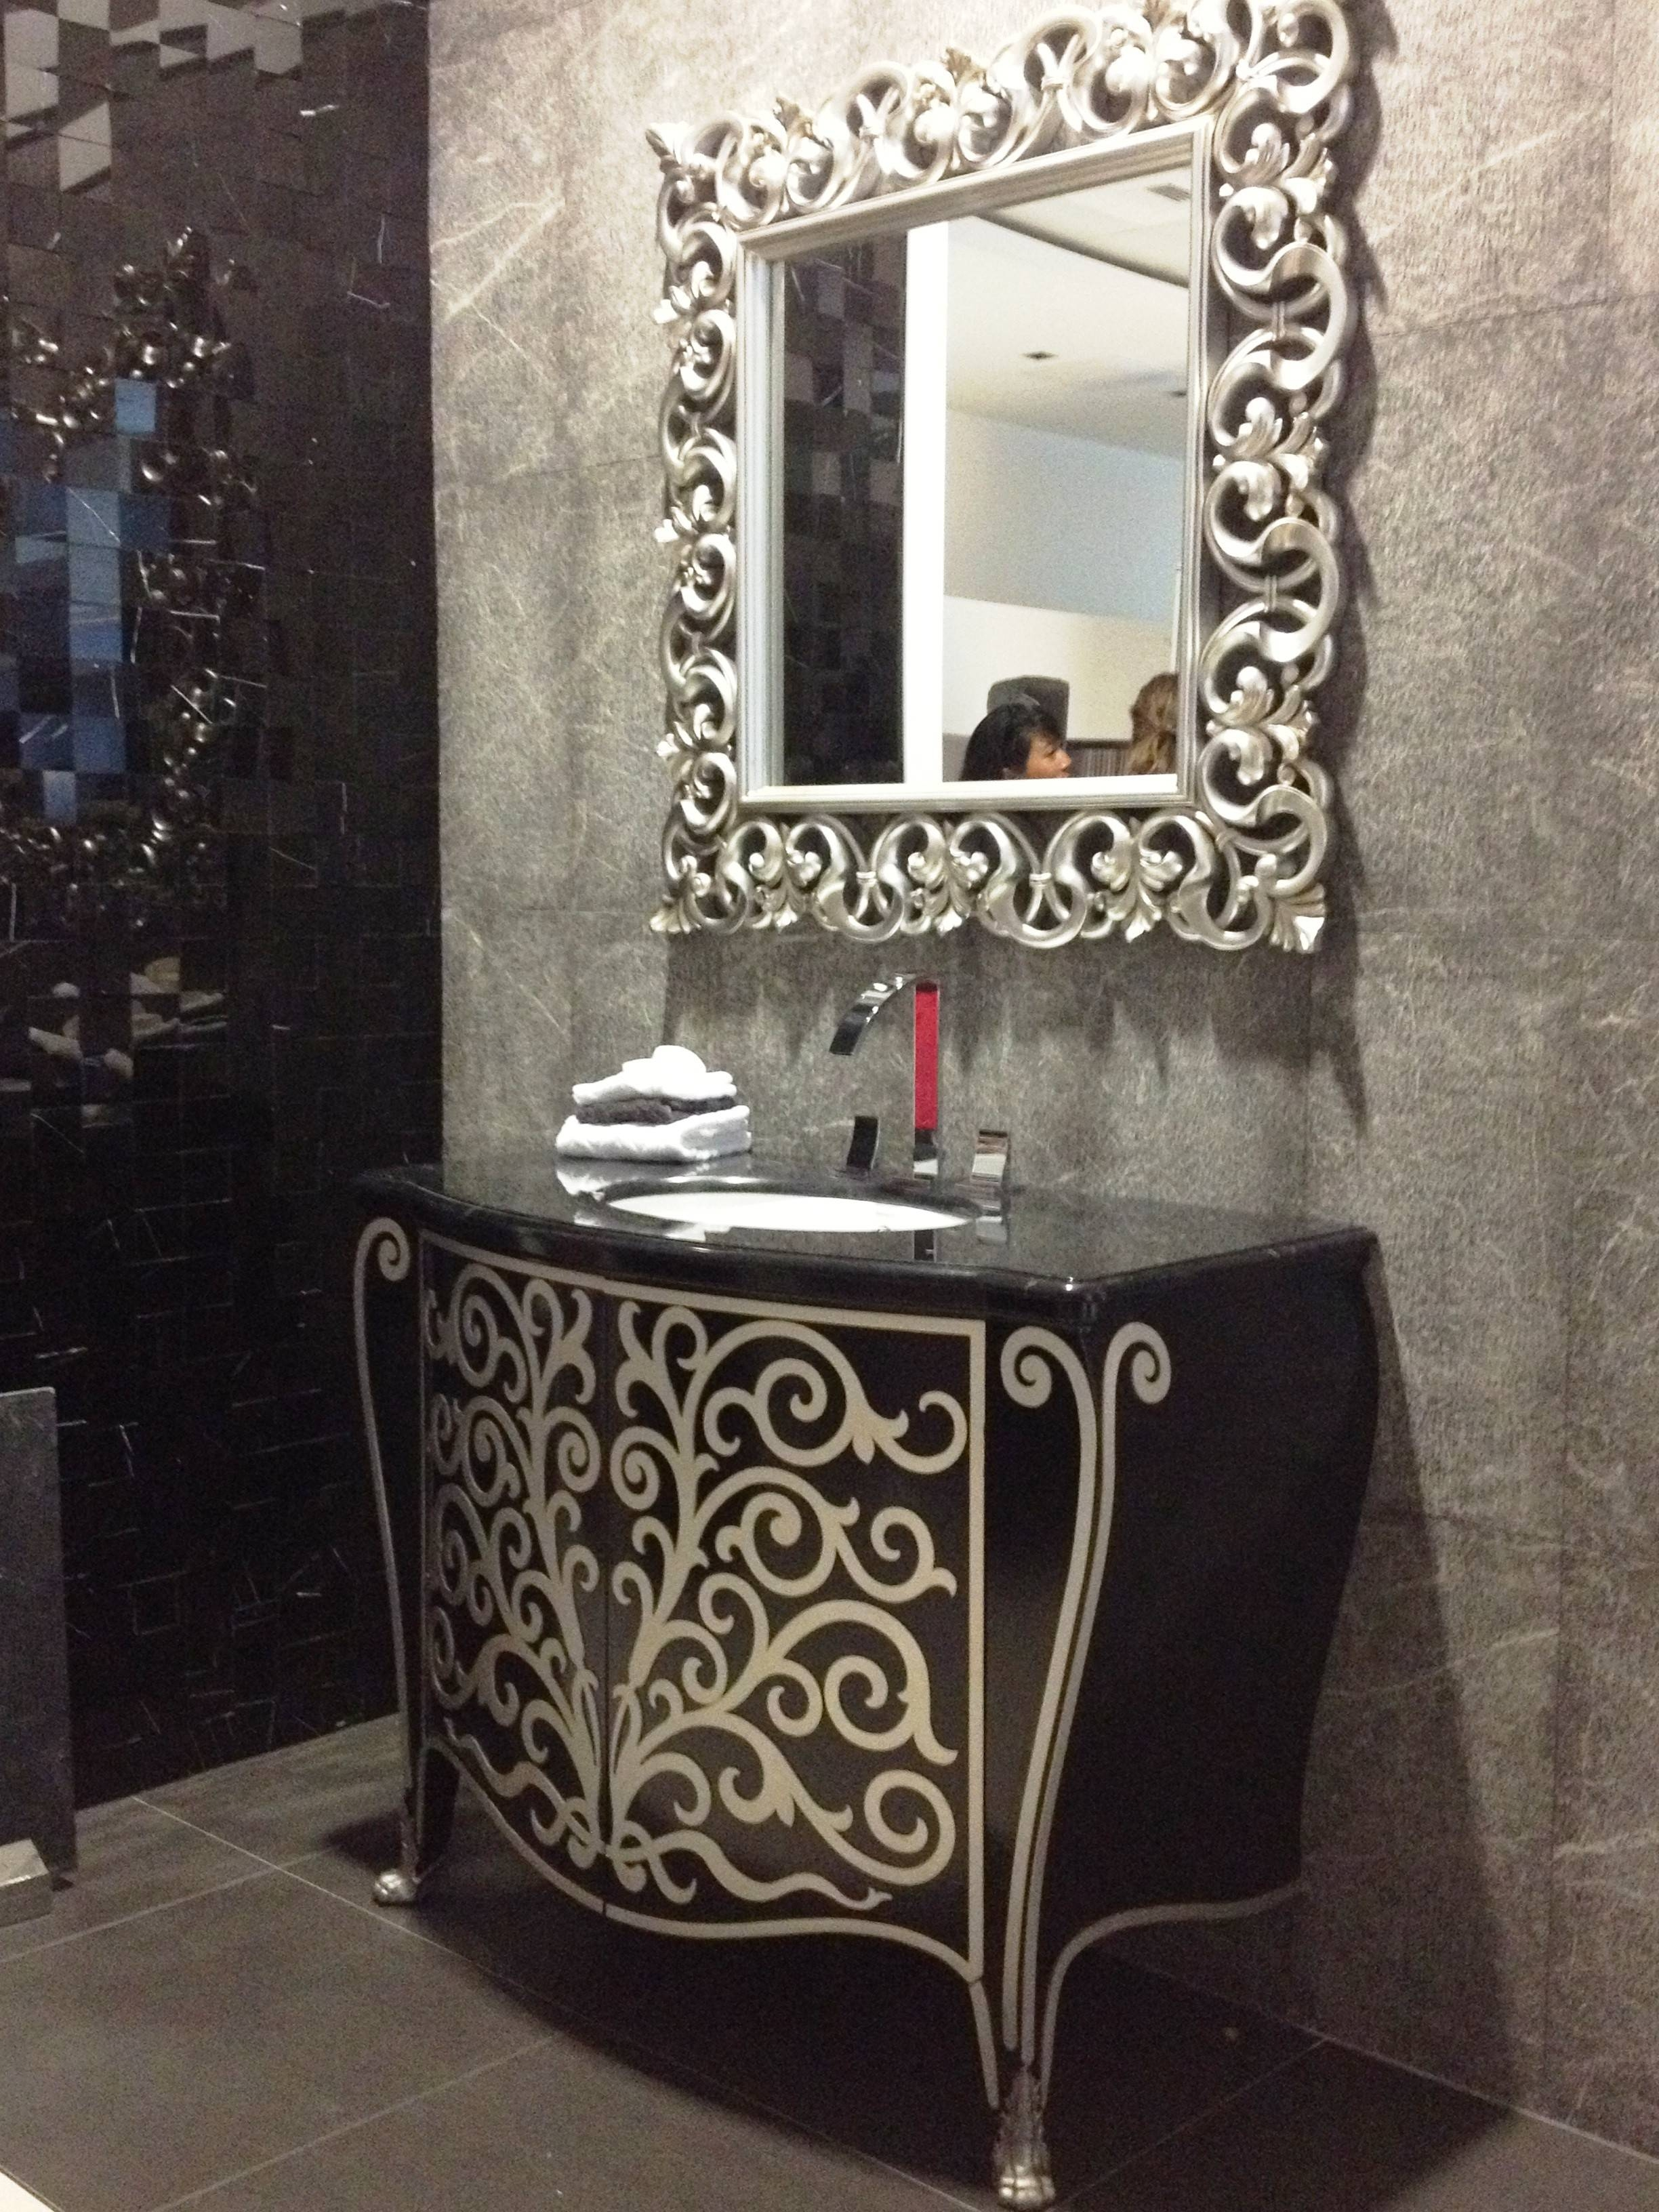 Bathroom Cabinets : Silver Framed Wall Mirror Bathroom Vanity Within Large Artistic Mirrors (View 1 of 15)